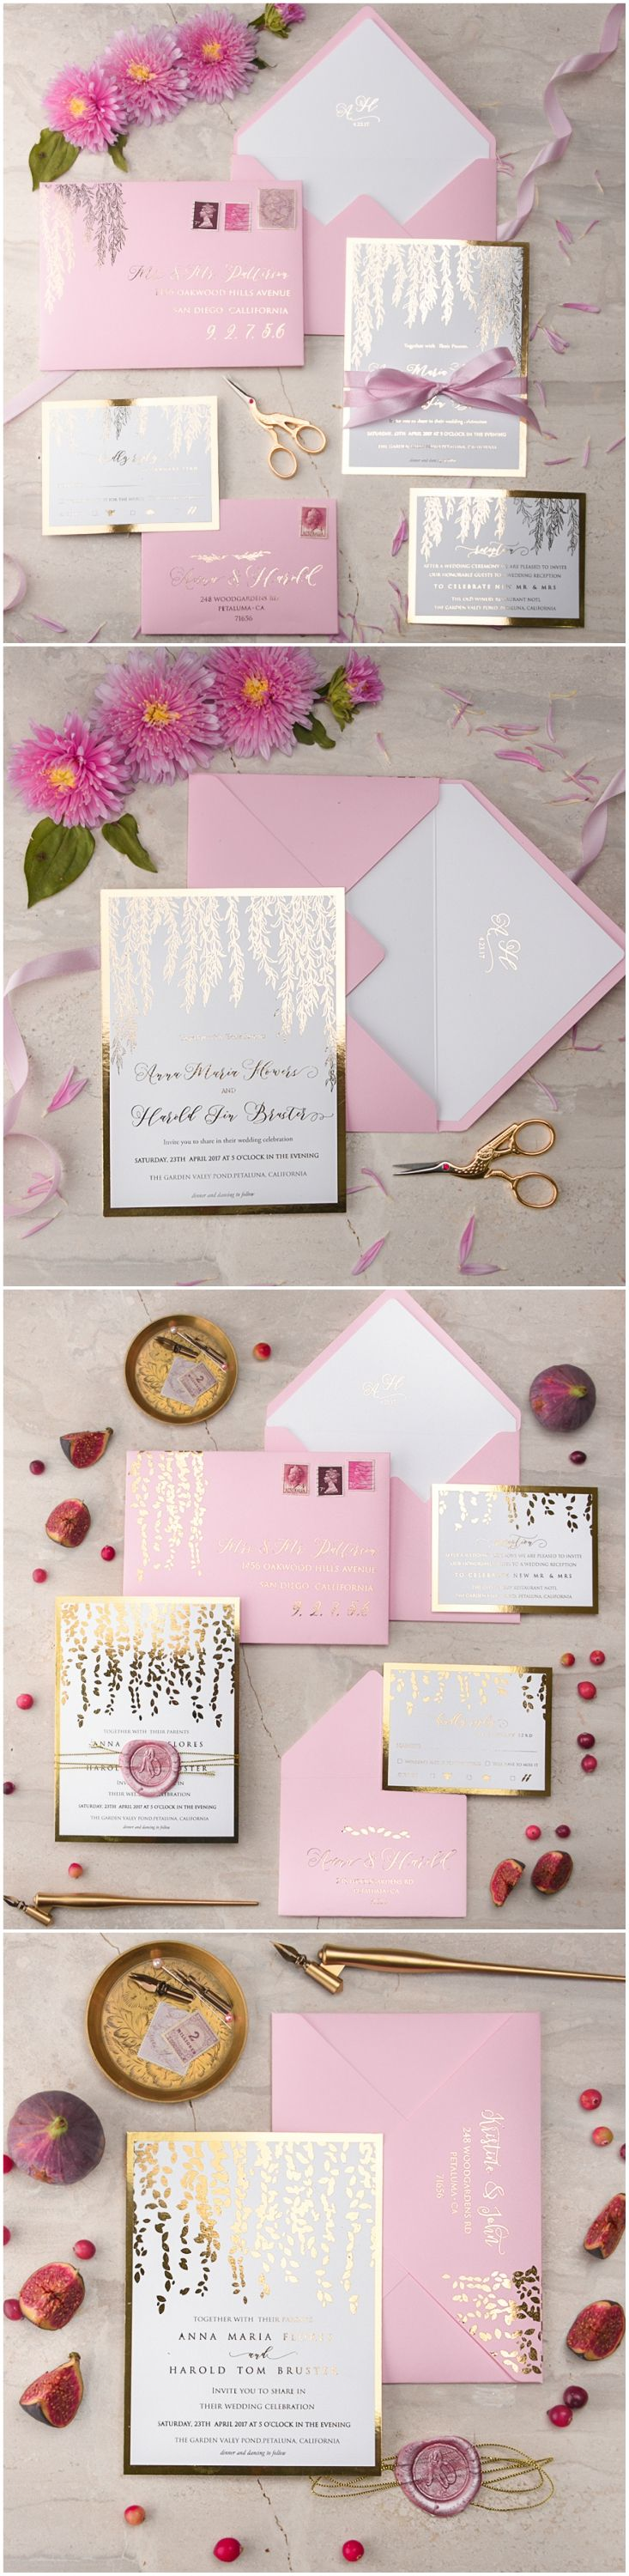 The 25 best Elegant wedding invitations ideas on Pinterest